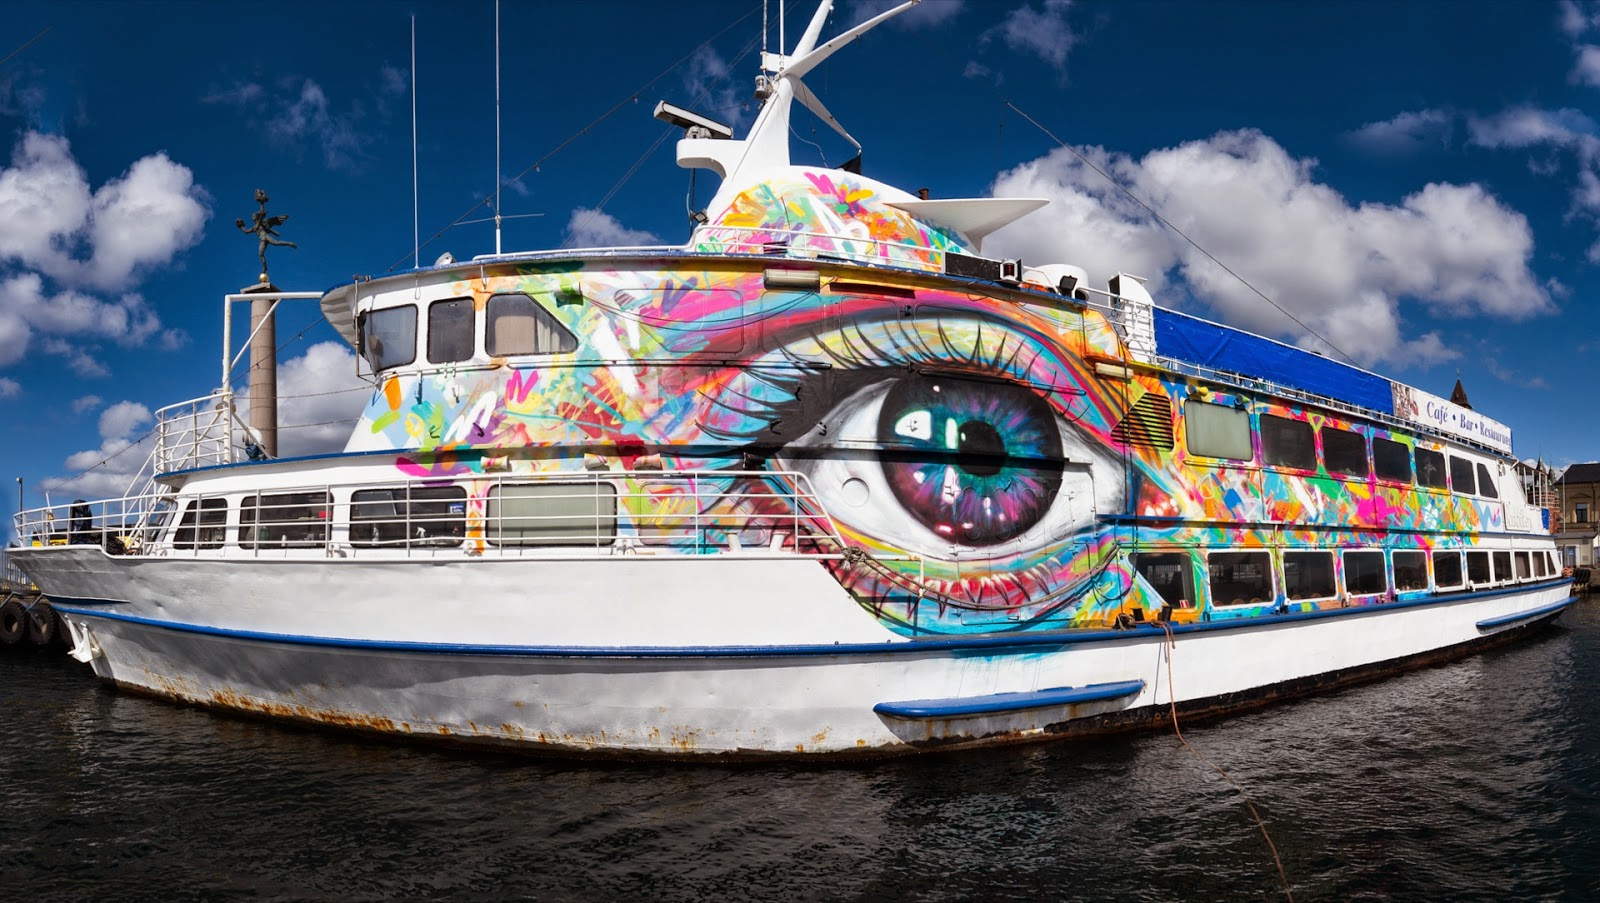 David Walker recently spent some time in Helsingborg, Sweden where he was invited to paint on an unusual canvas for the Add More Colors Festival